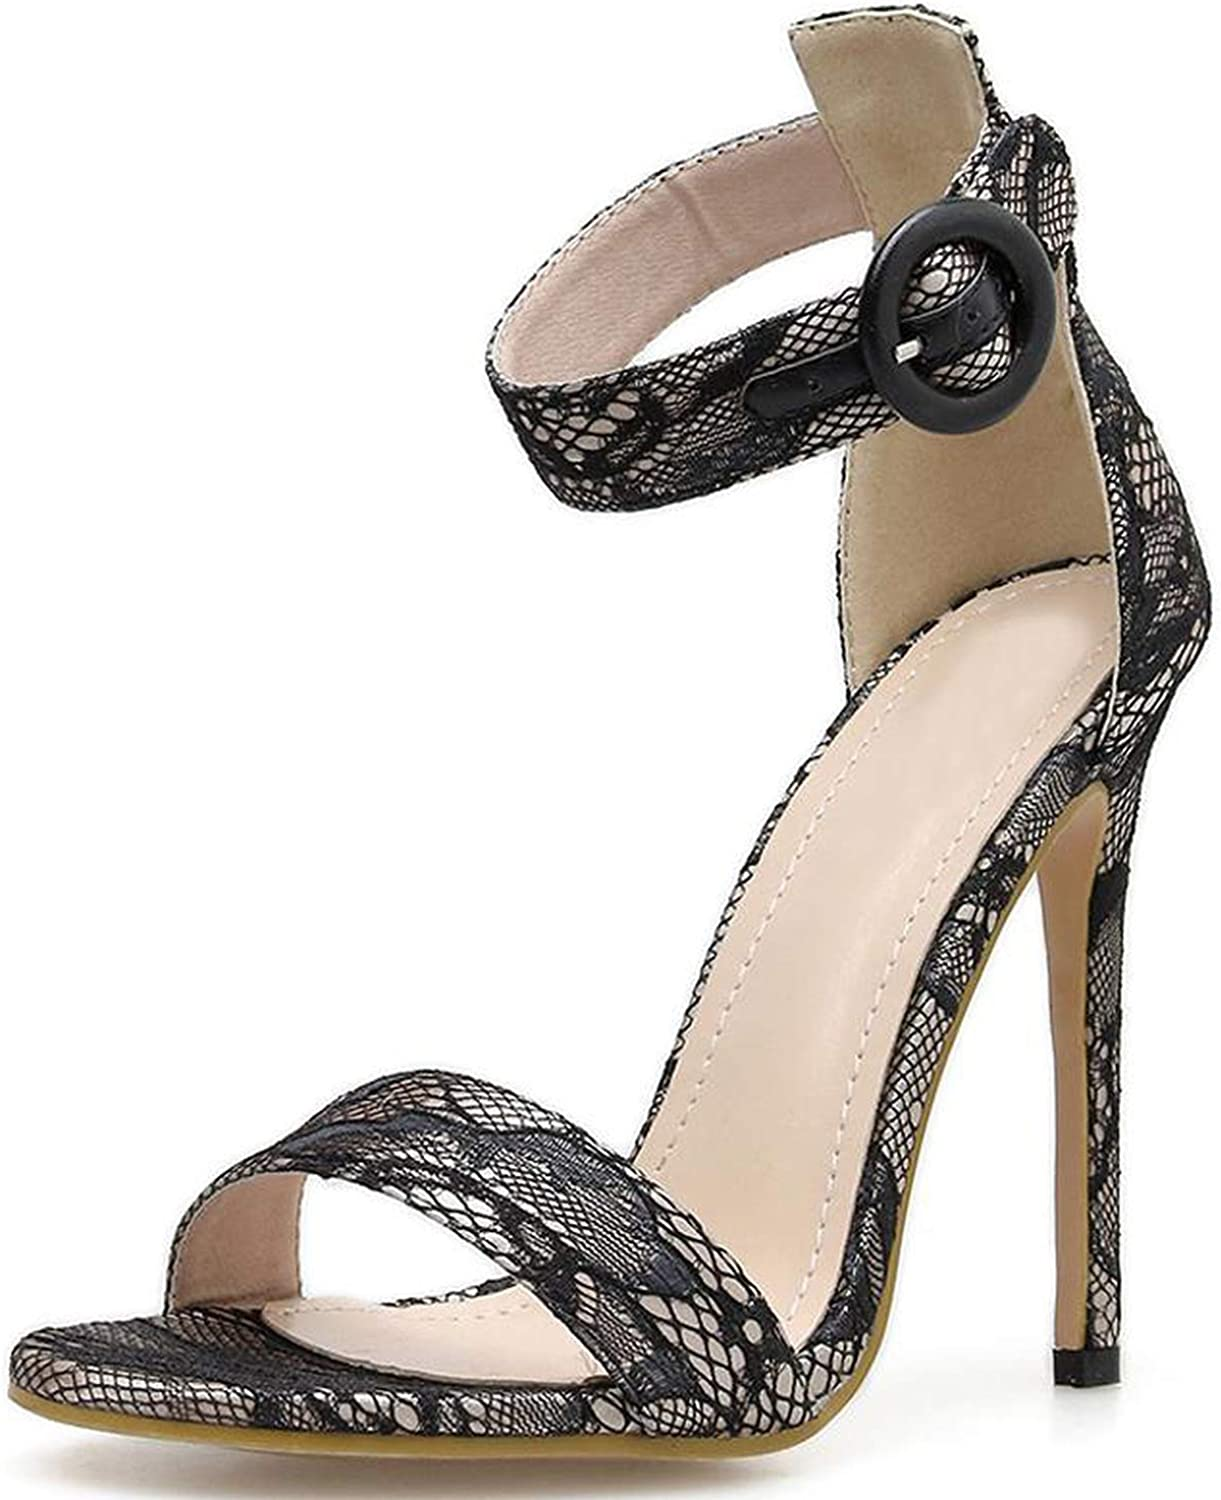 Sexy Silk Ankle Strappy Open Toe High-heelsed shoes Woman Sandals Summer shoes,Black,6